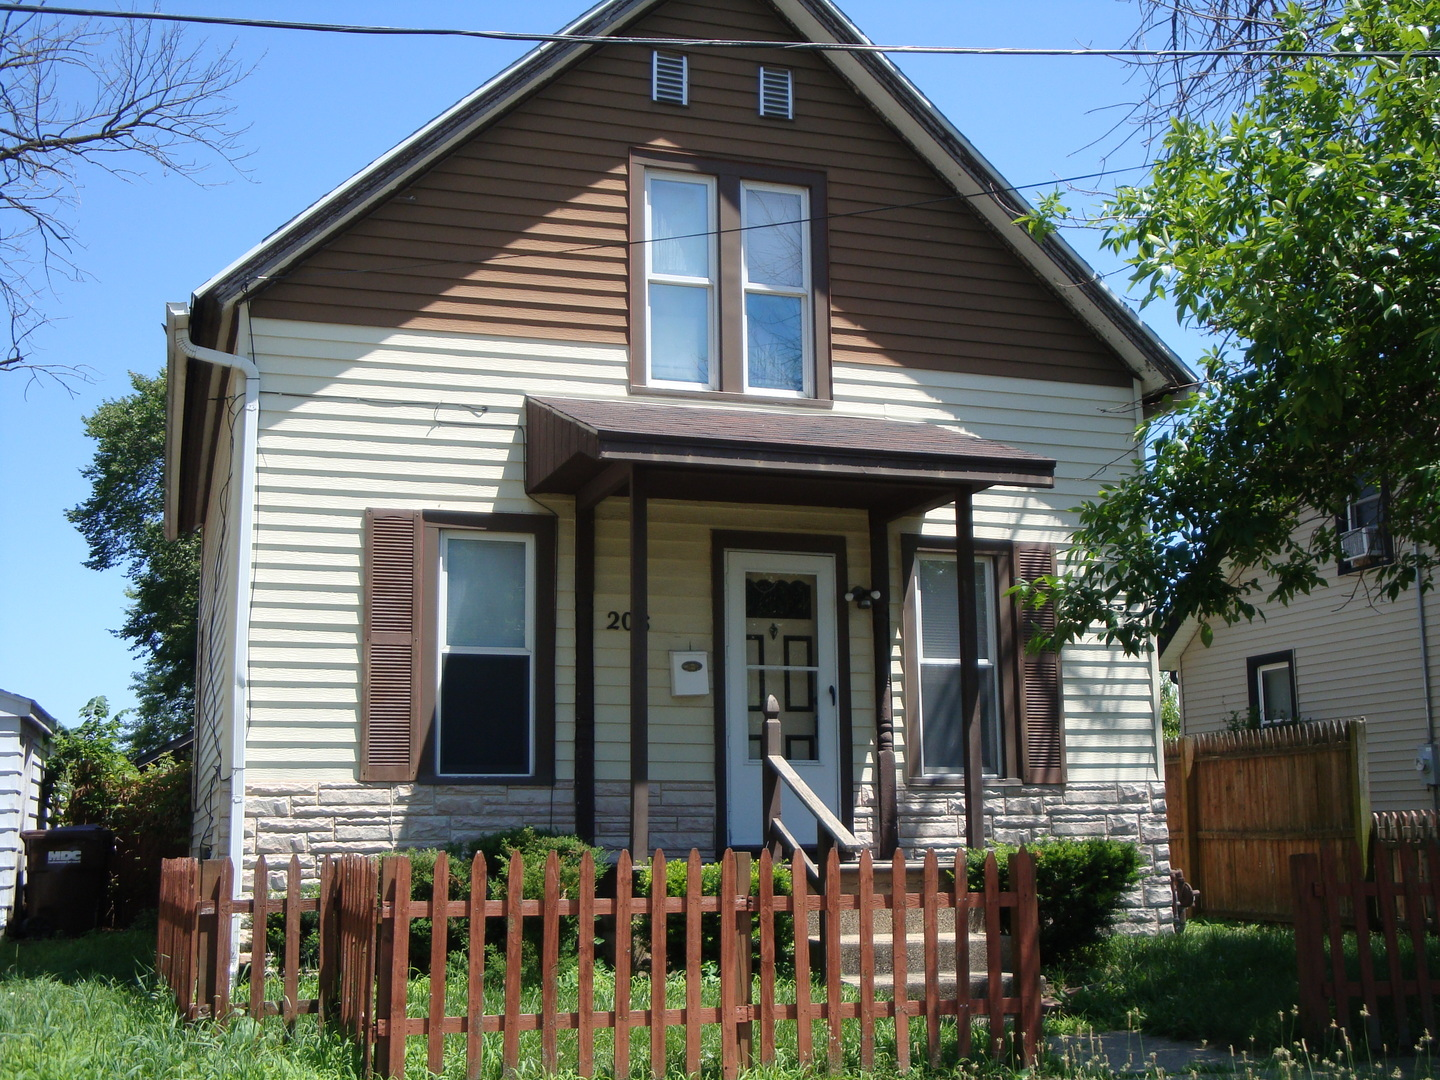 208 Warren ,Belvidere, Illinois 61008